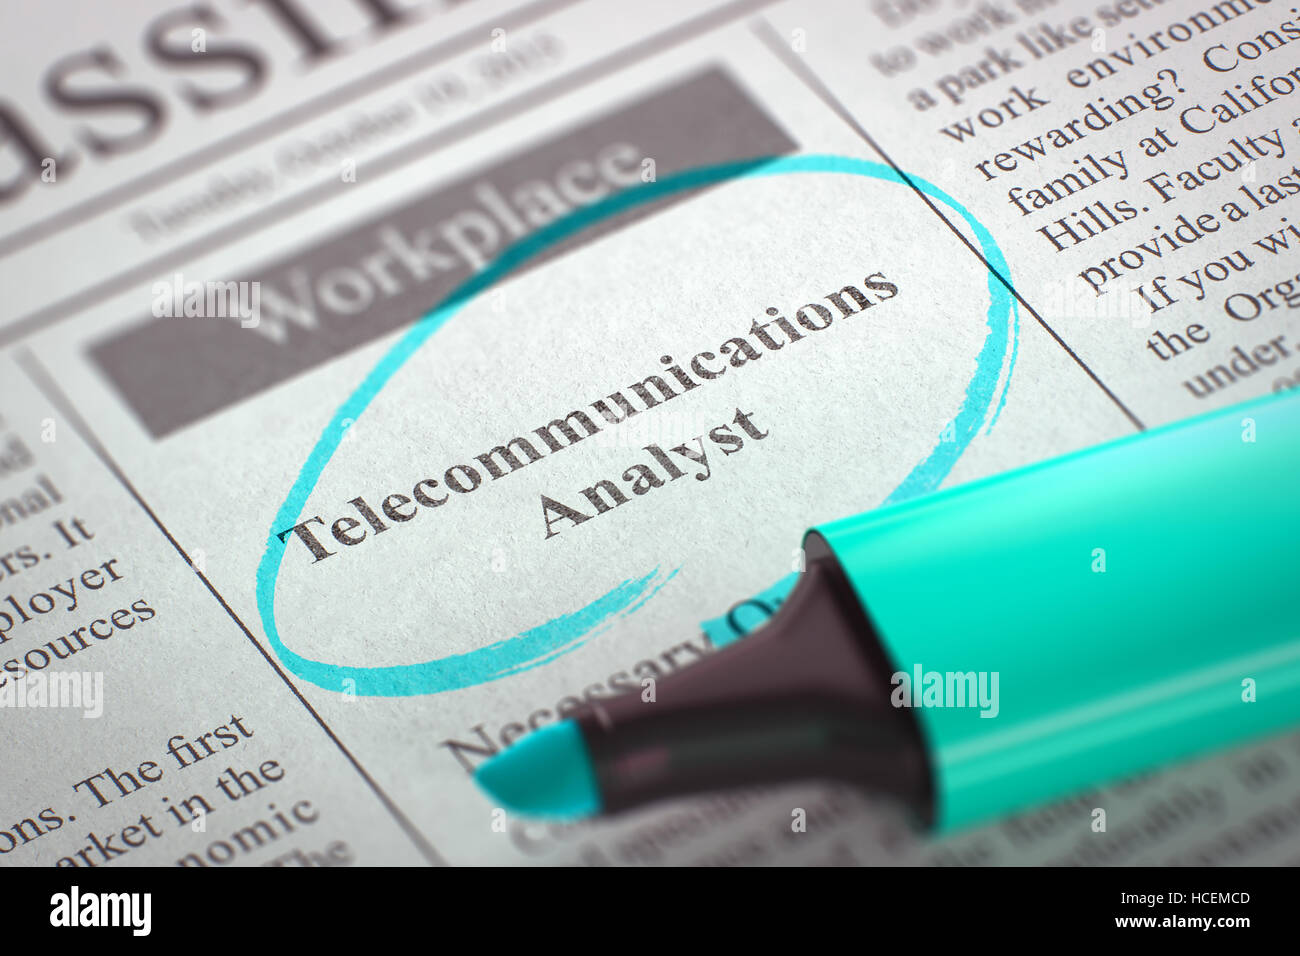 Telecommunications Analyst Join Our Team. 3D. - Stock Image